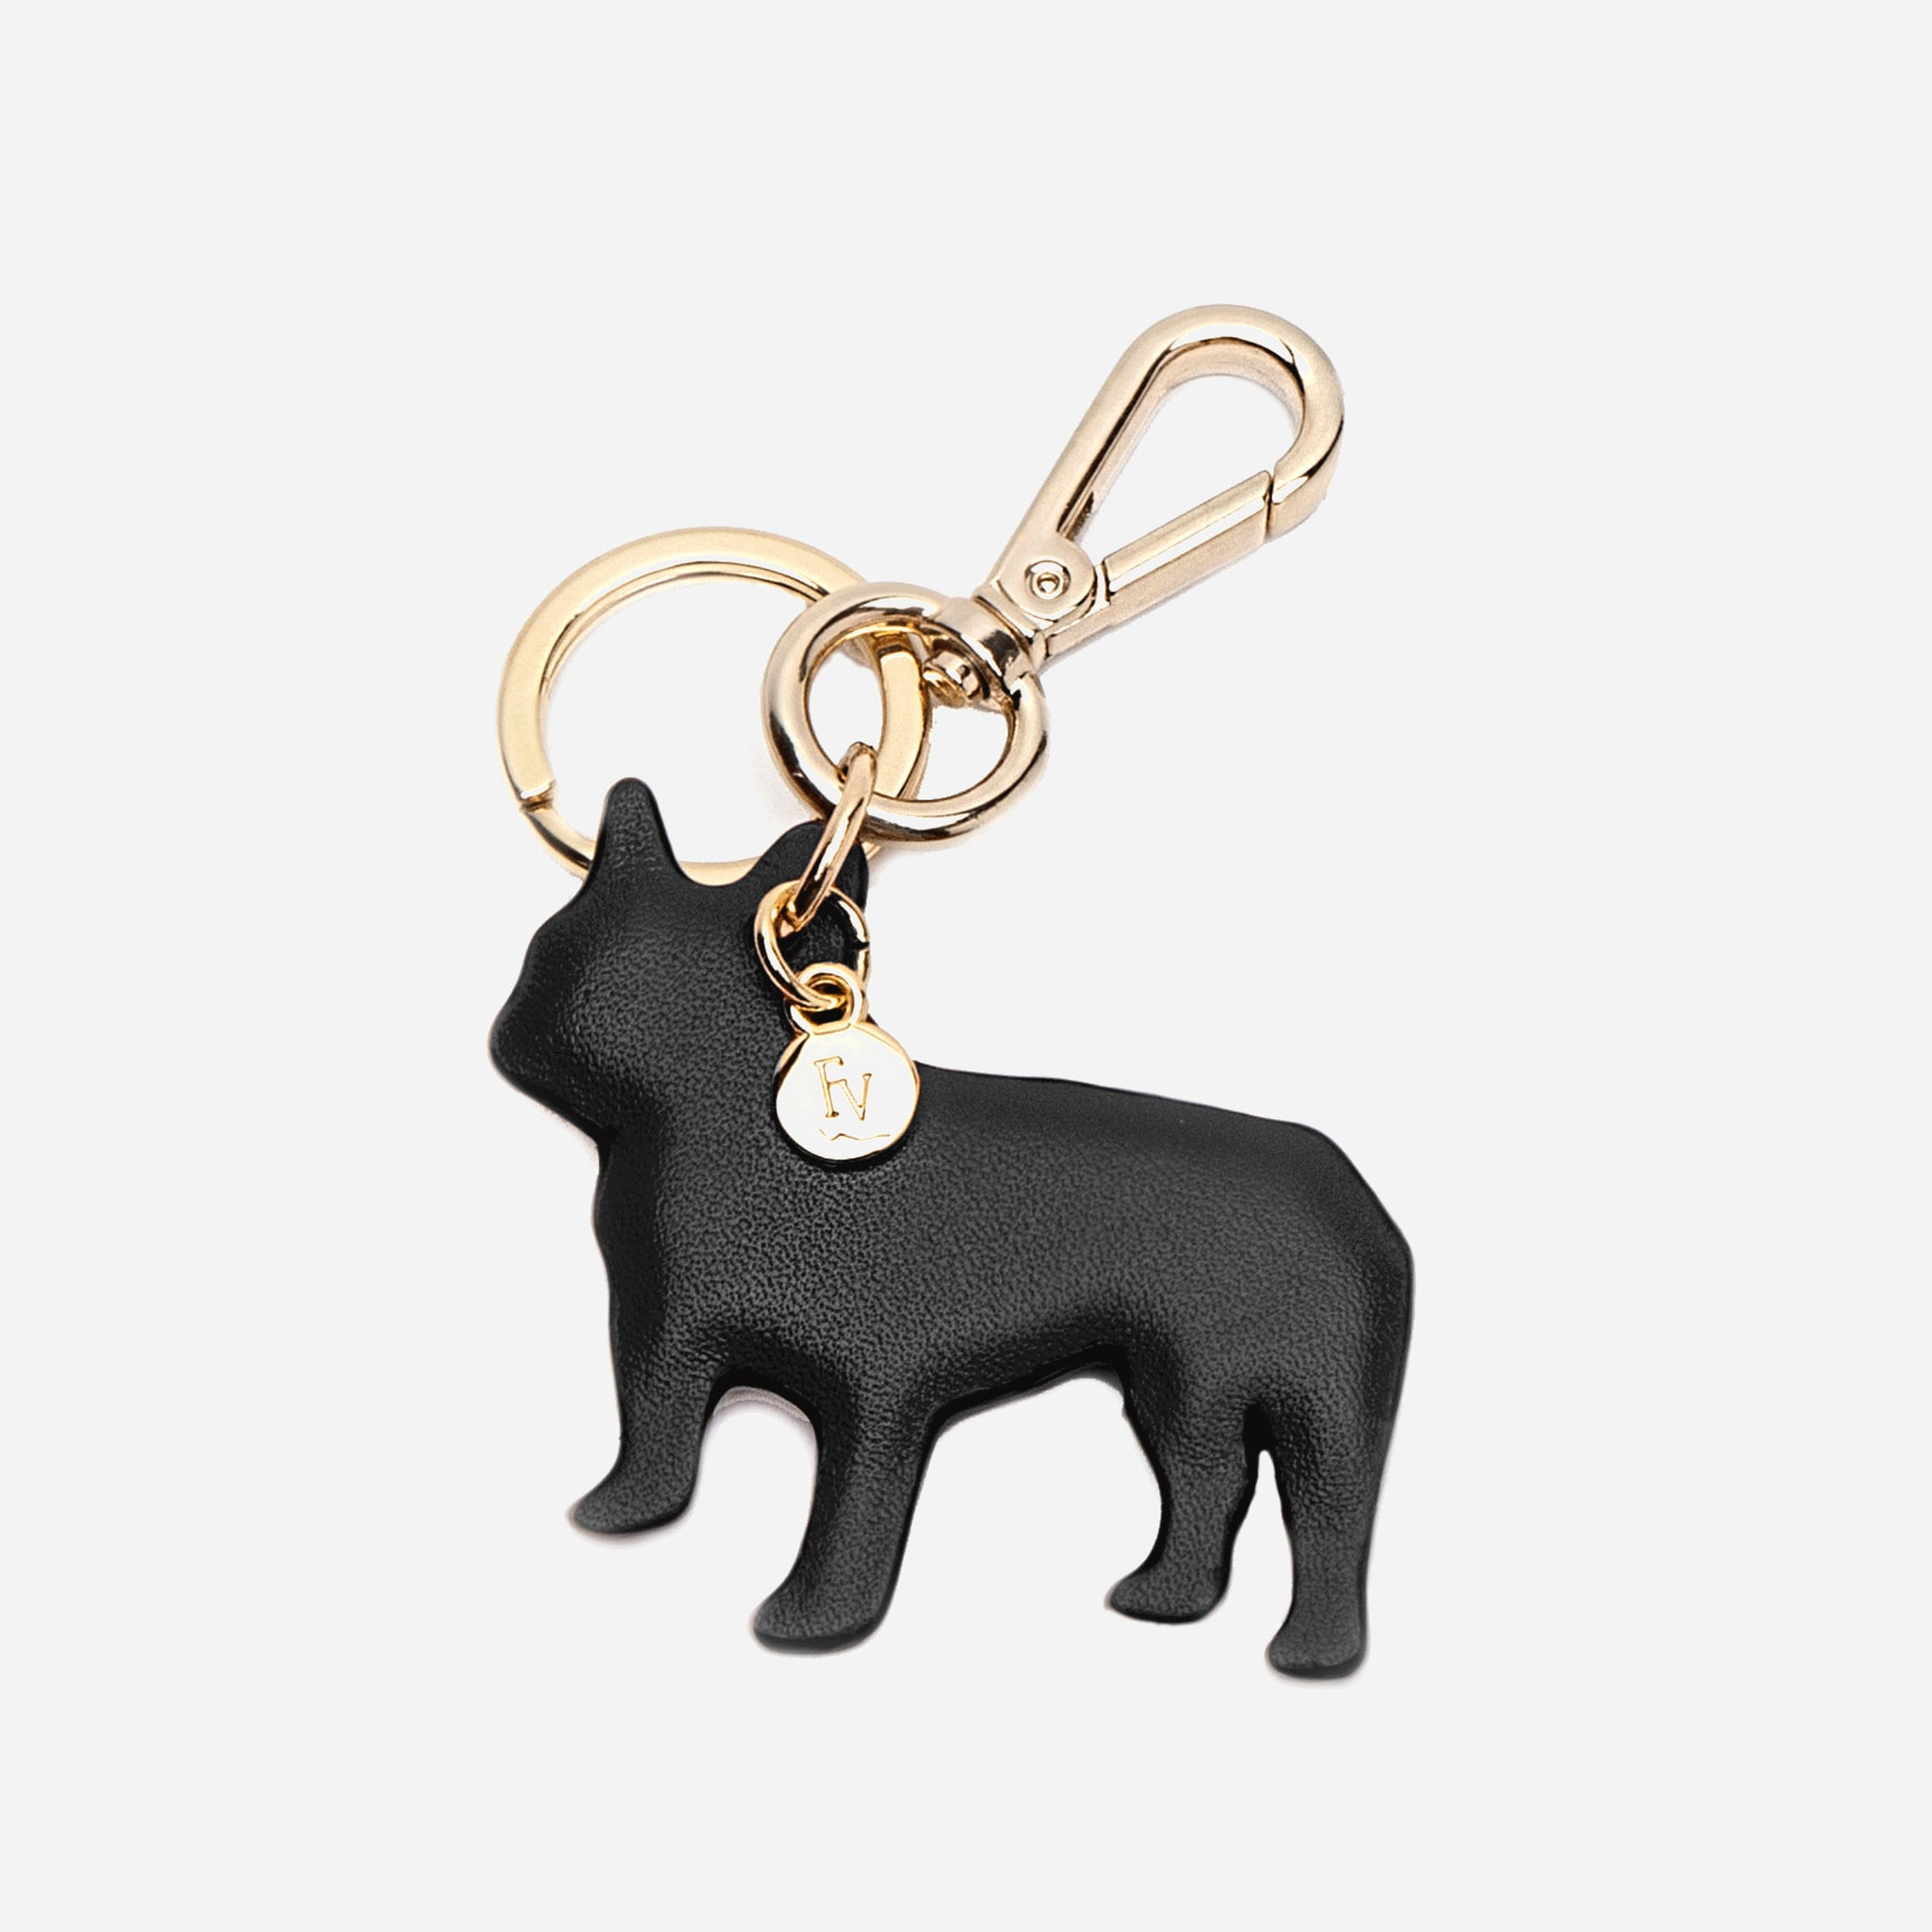 French Bulldog Keychain Black